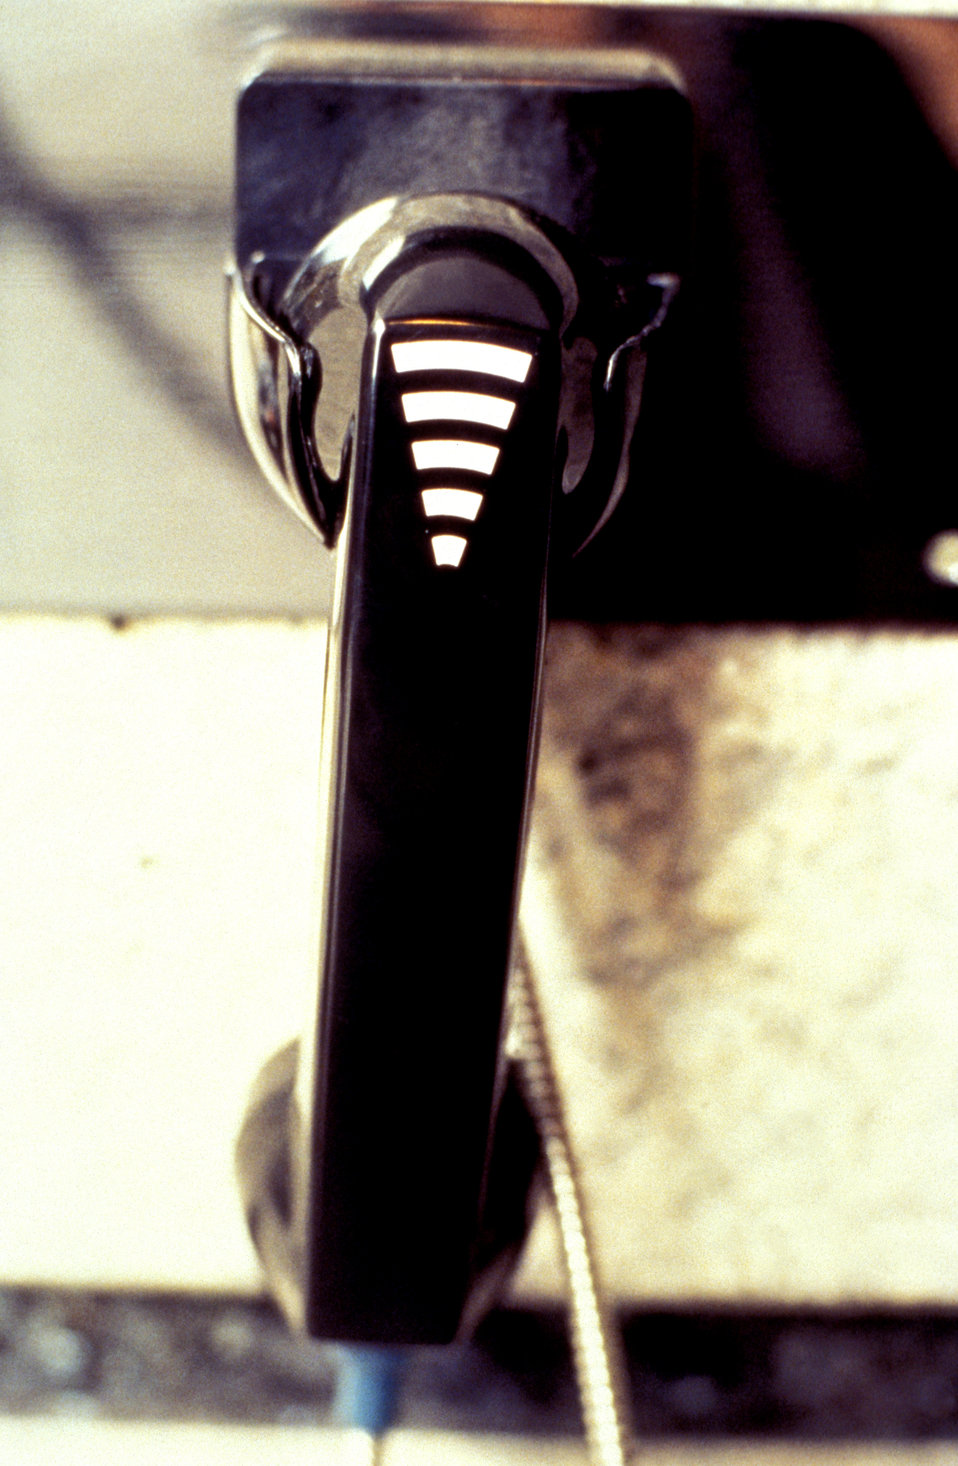 This 1995 photograph depicted a telephone receiver handset that had been equipped with a volume control, as well as the universal symbol for